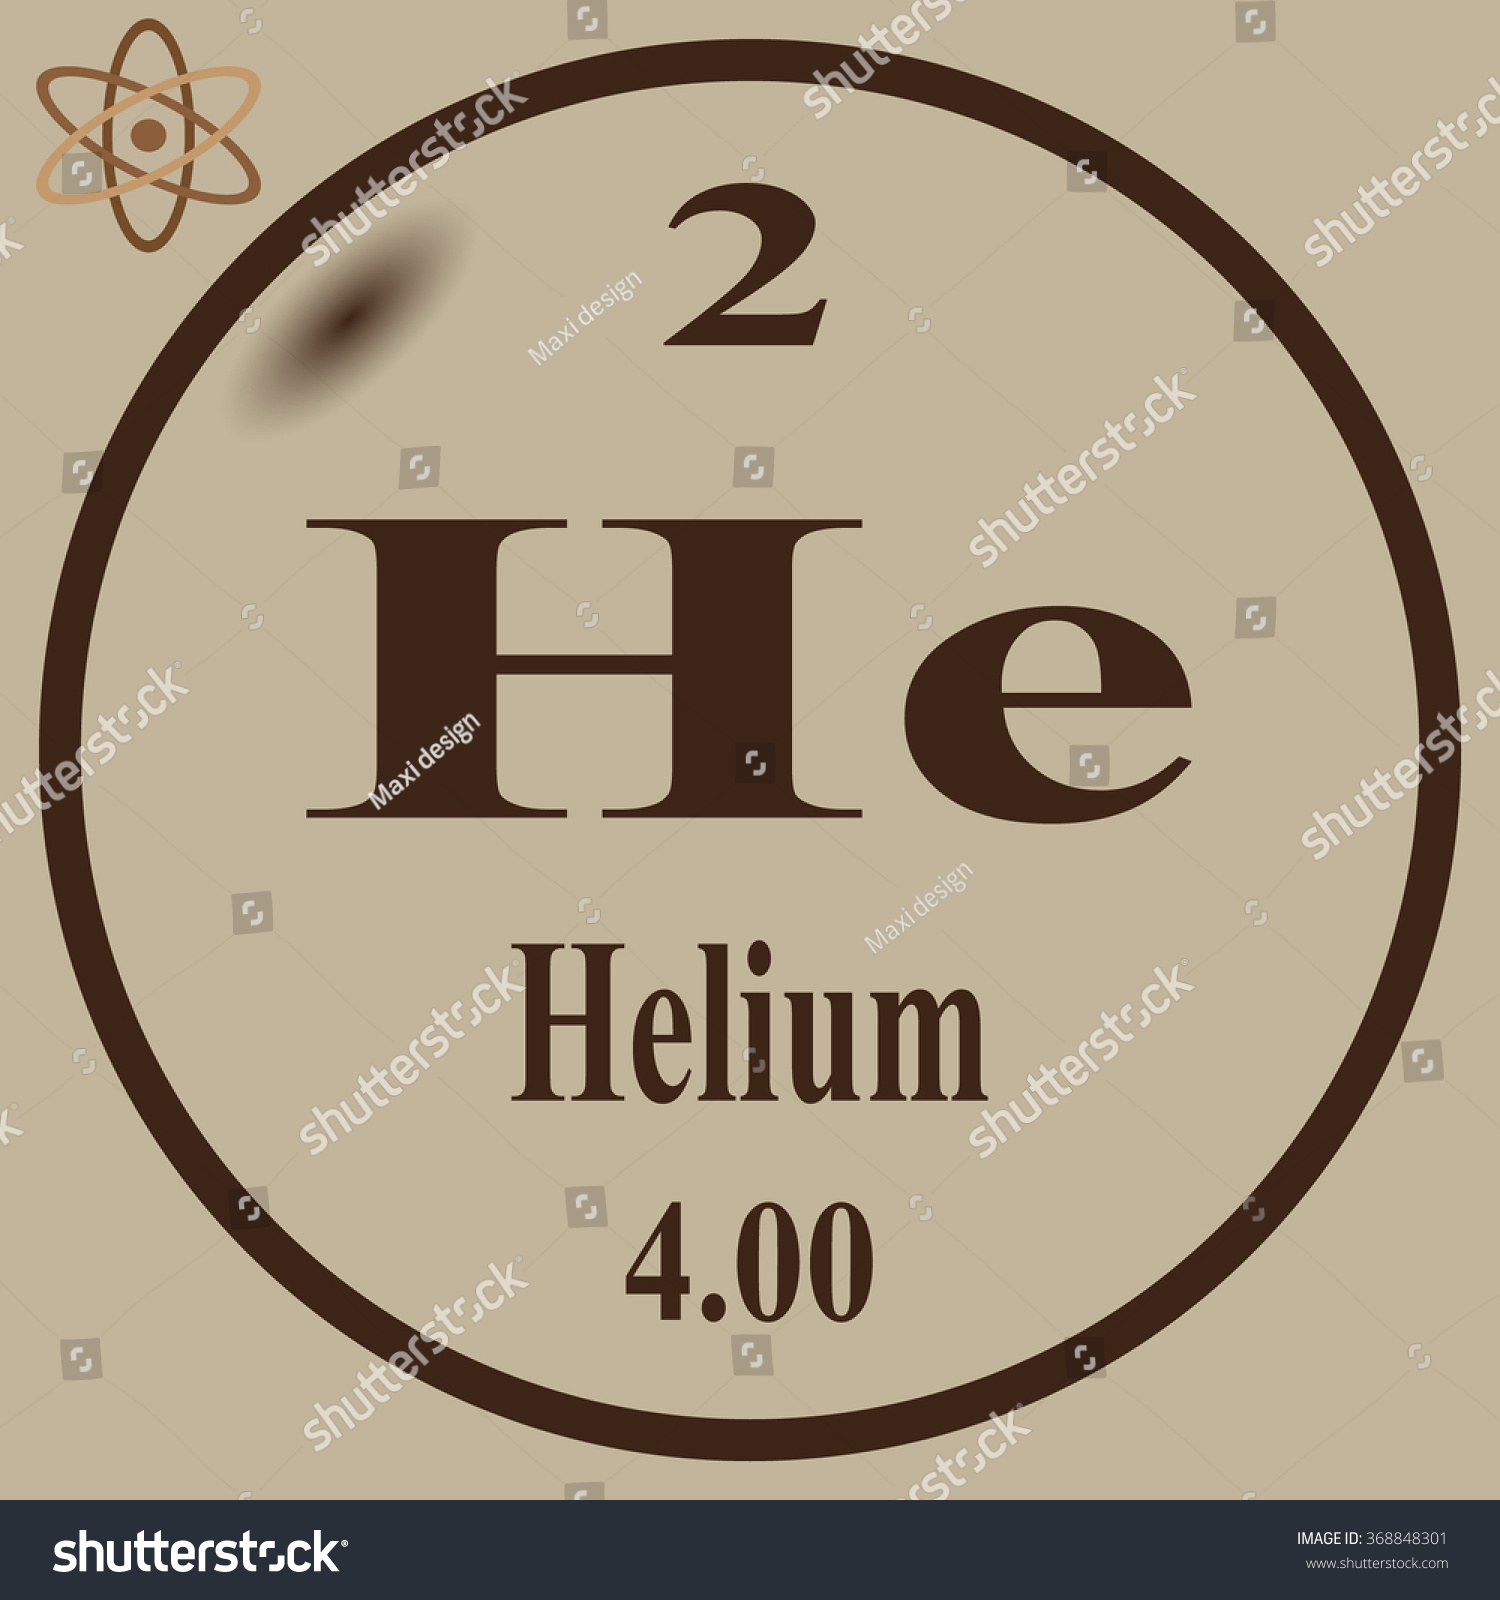 Periodic table elements helium stock vector 368848301 shutterstock urtaz Image collections